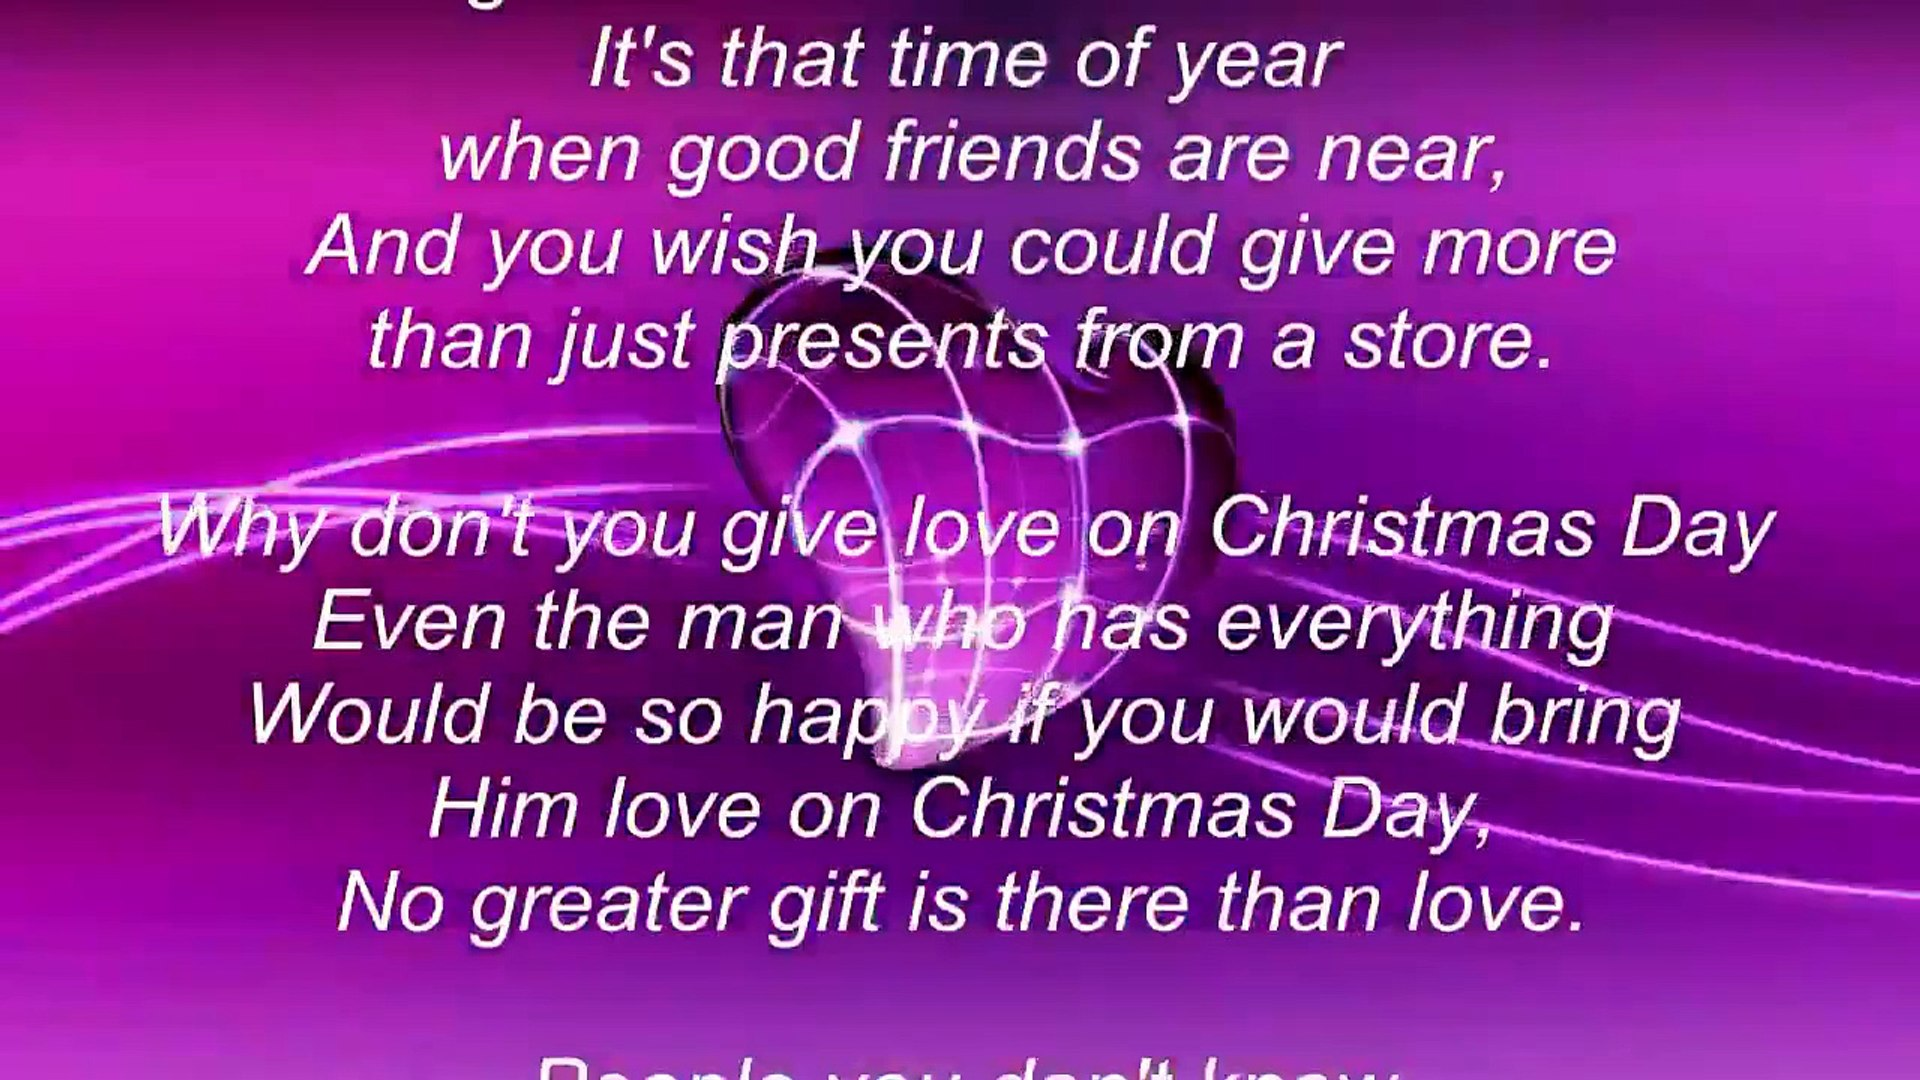 Give Love On Christmas Day.Jackson 5 Give Love On Christmas Day Song Lyrics